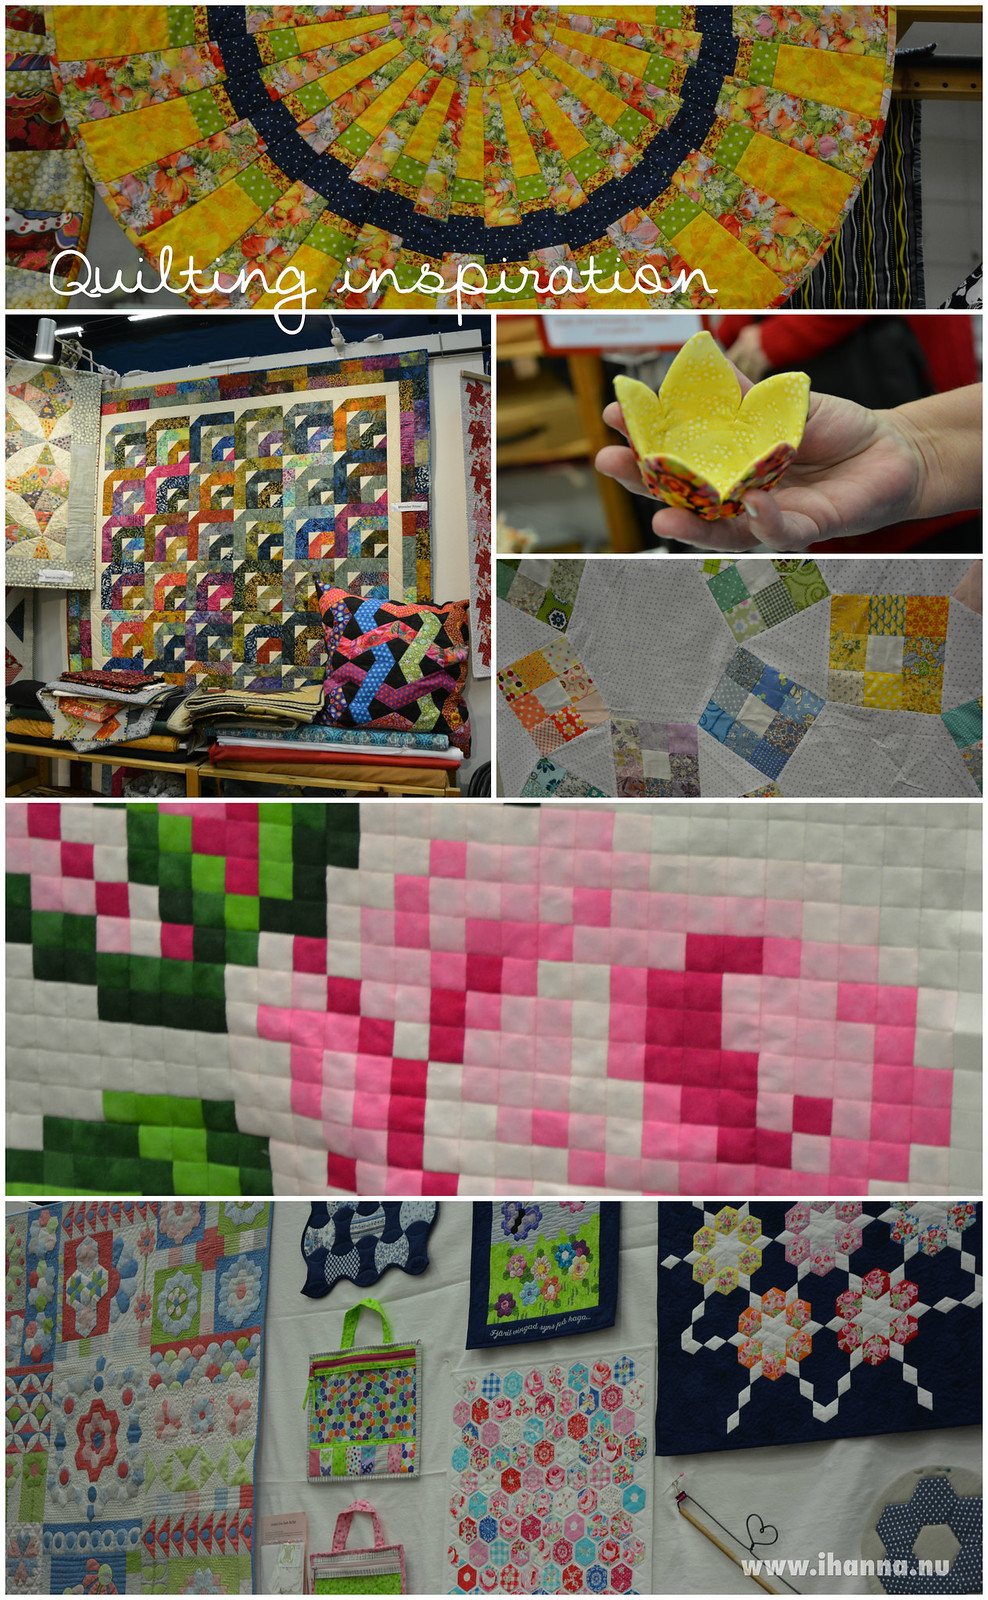 Quilting inspiration on the walls blogged by @ihanna #syfestivalen